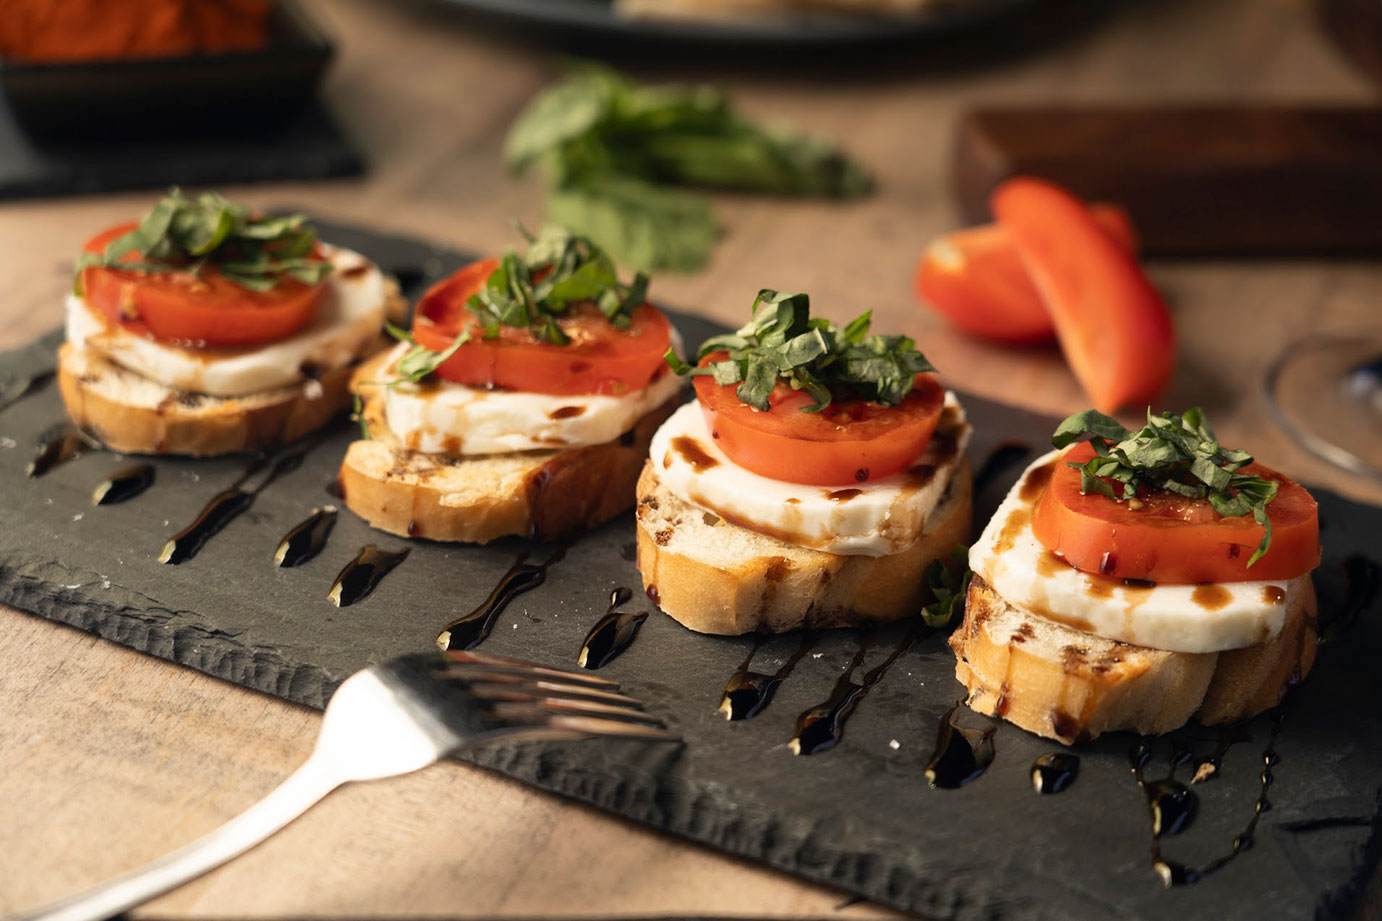 Toast with cheese and tomato